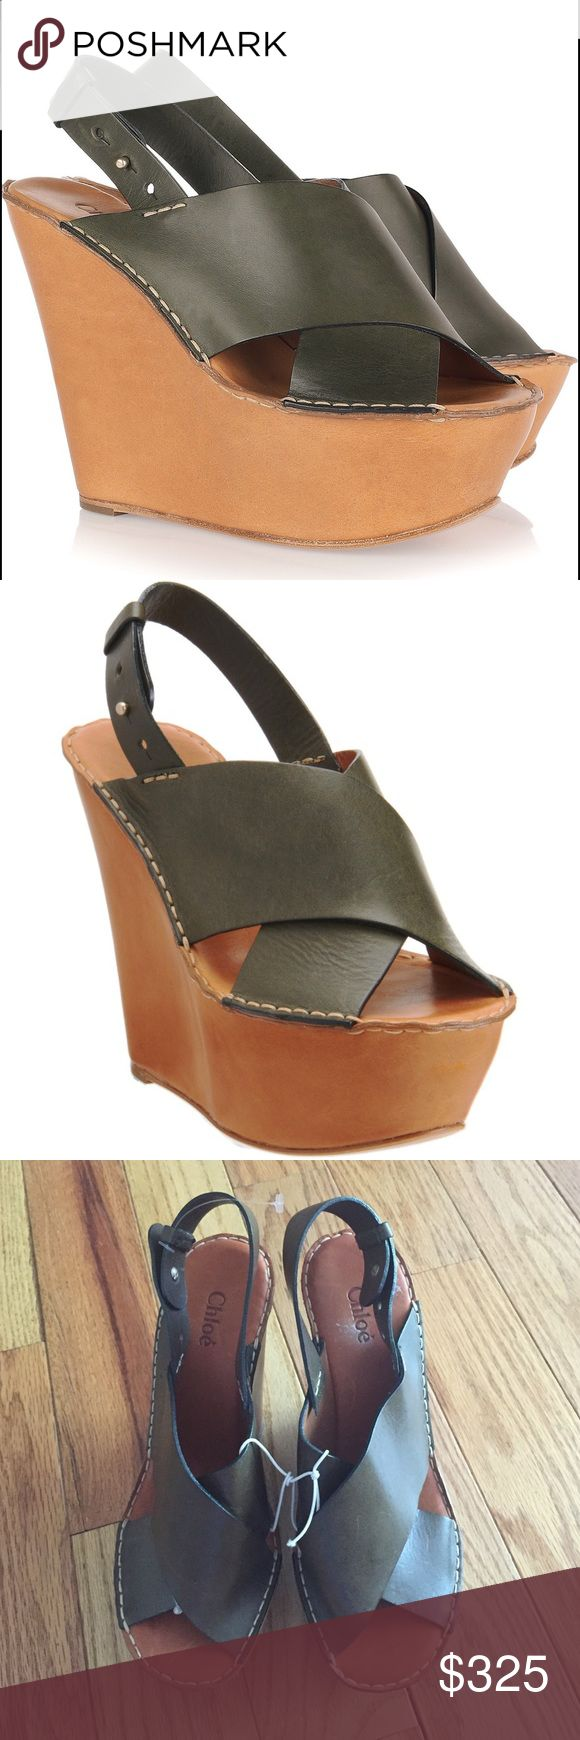 ⚡️FINAL FLASH⚡️ NWOT Chloe Wedges AMAZING Chloe Wedges with Hunter Green Straps and brown wedges. 100% quality calf leather. Never worn except to try on. No box, bag or tags. OFFERS WELCOME  Chloe Shoes